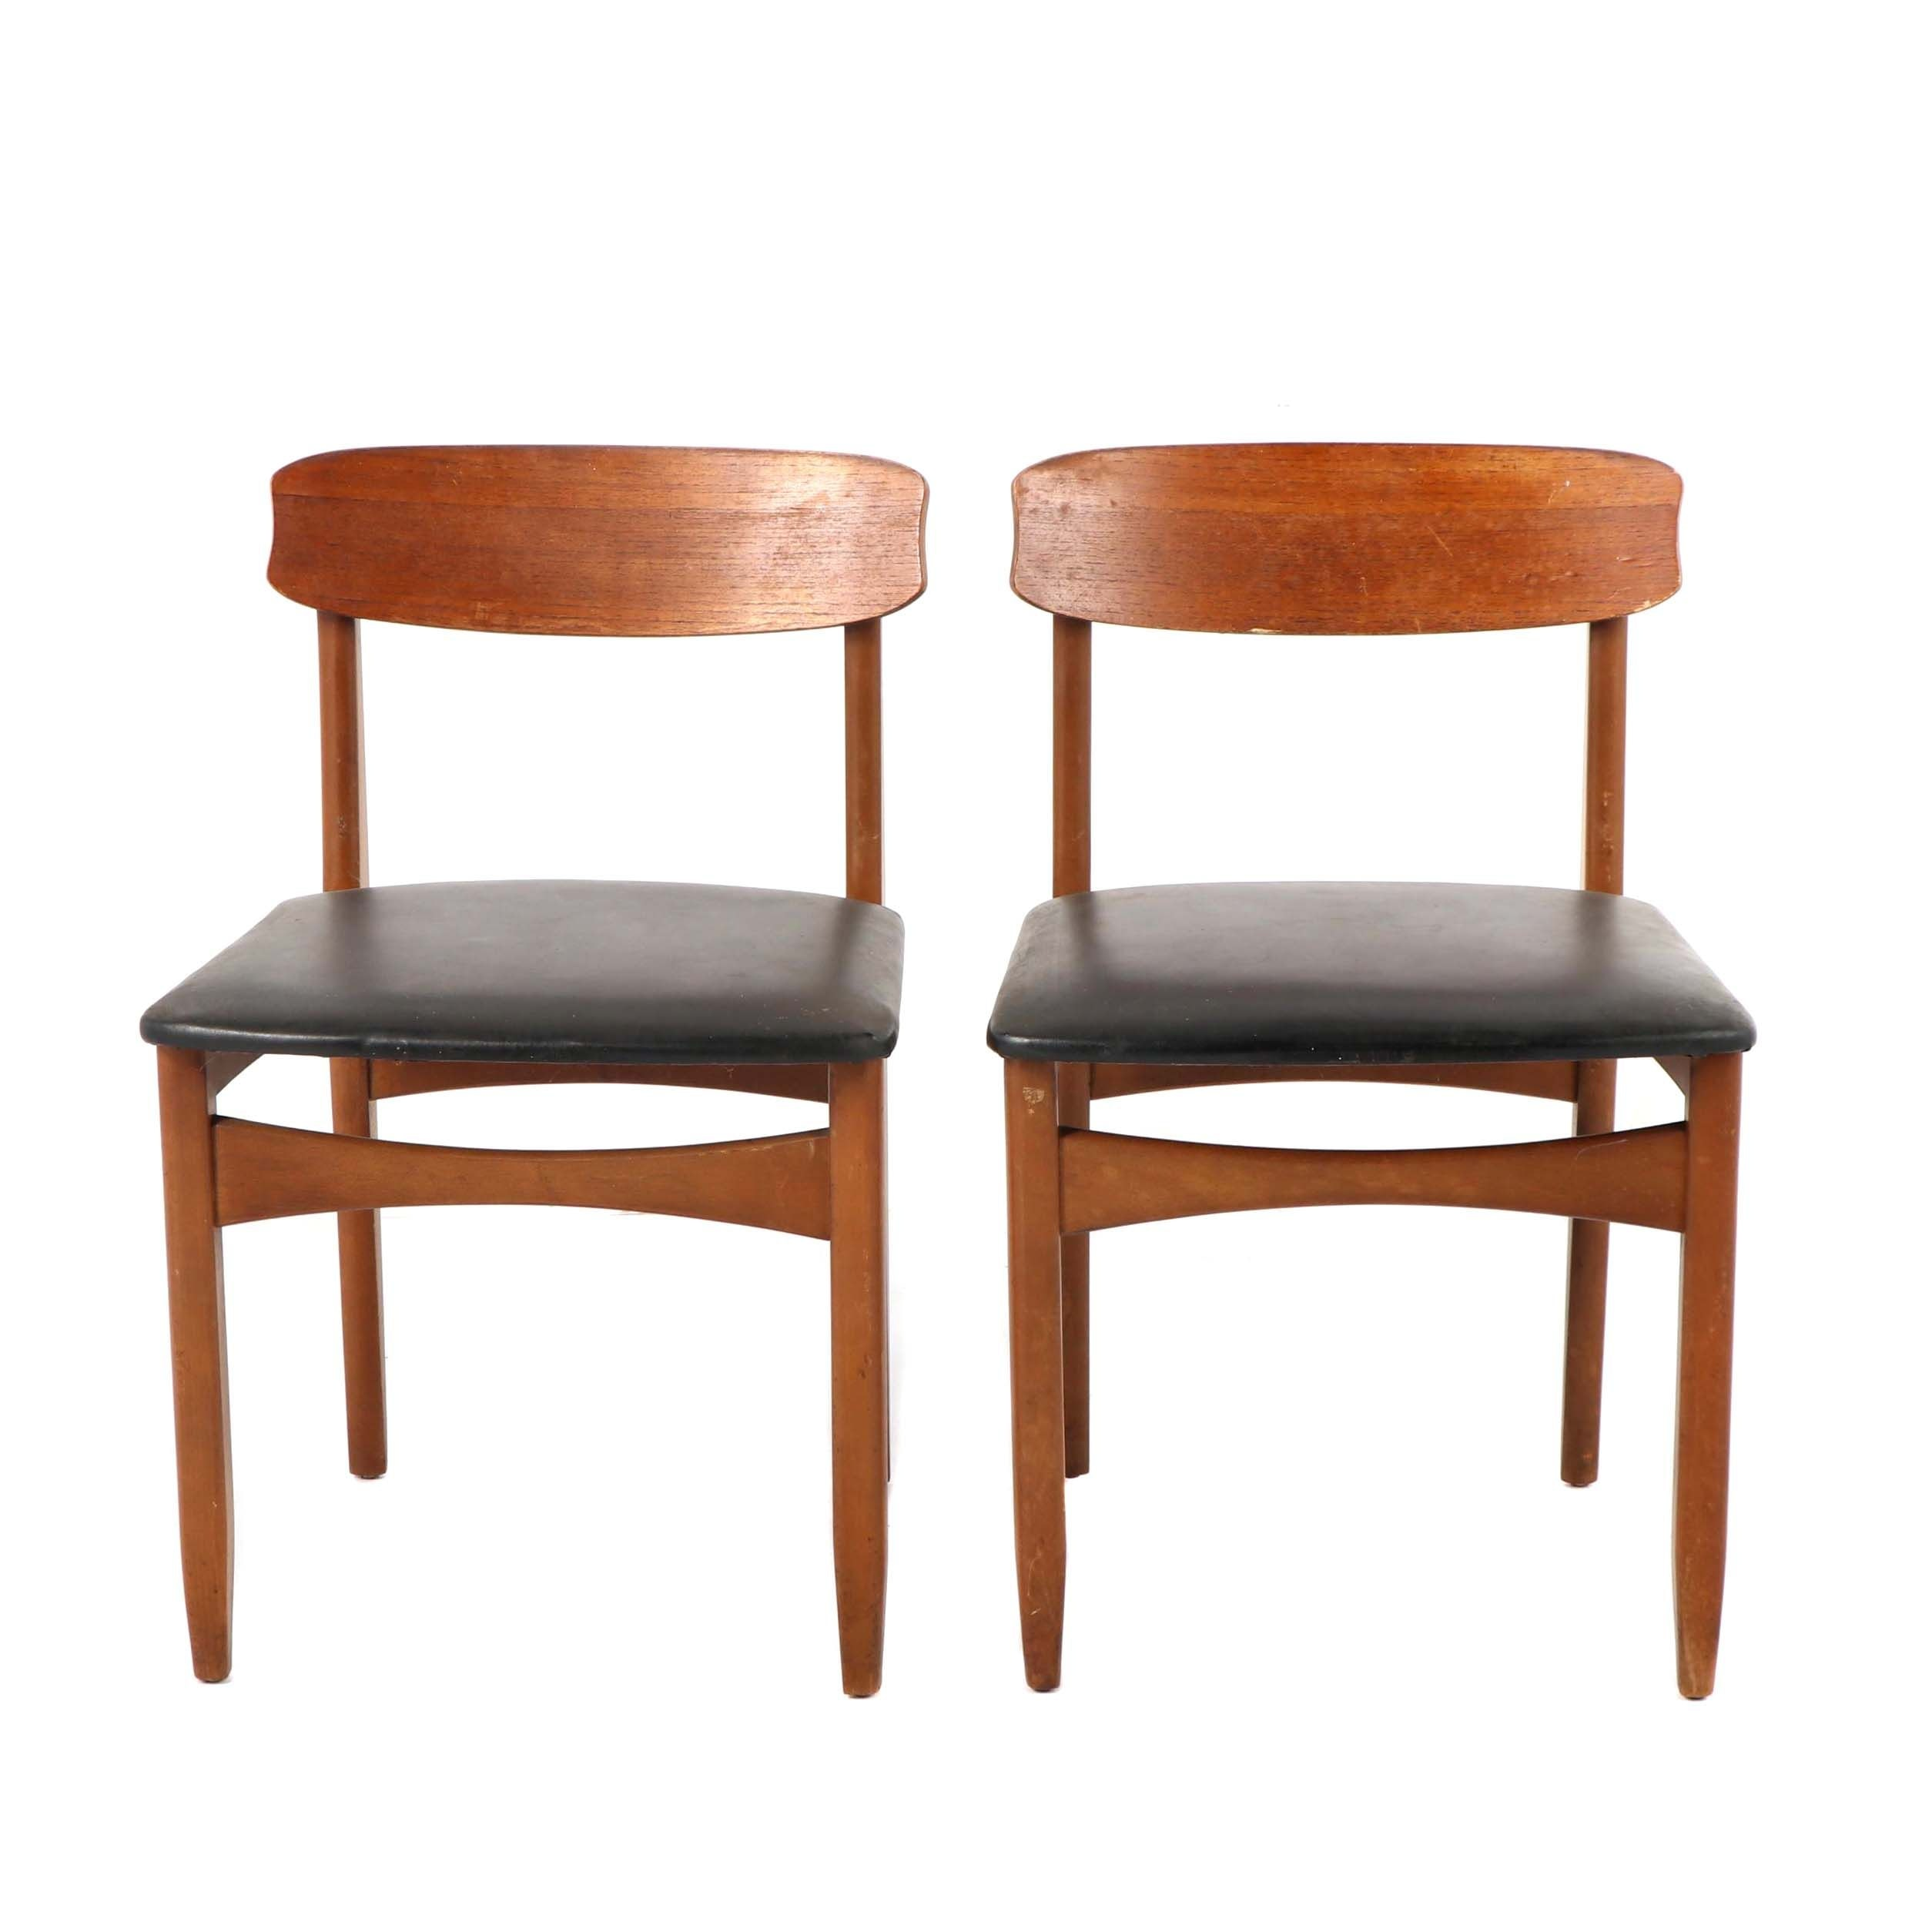 Danish Modern Vinyl Upholstered Side Chairs, Mid 20th Century